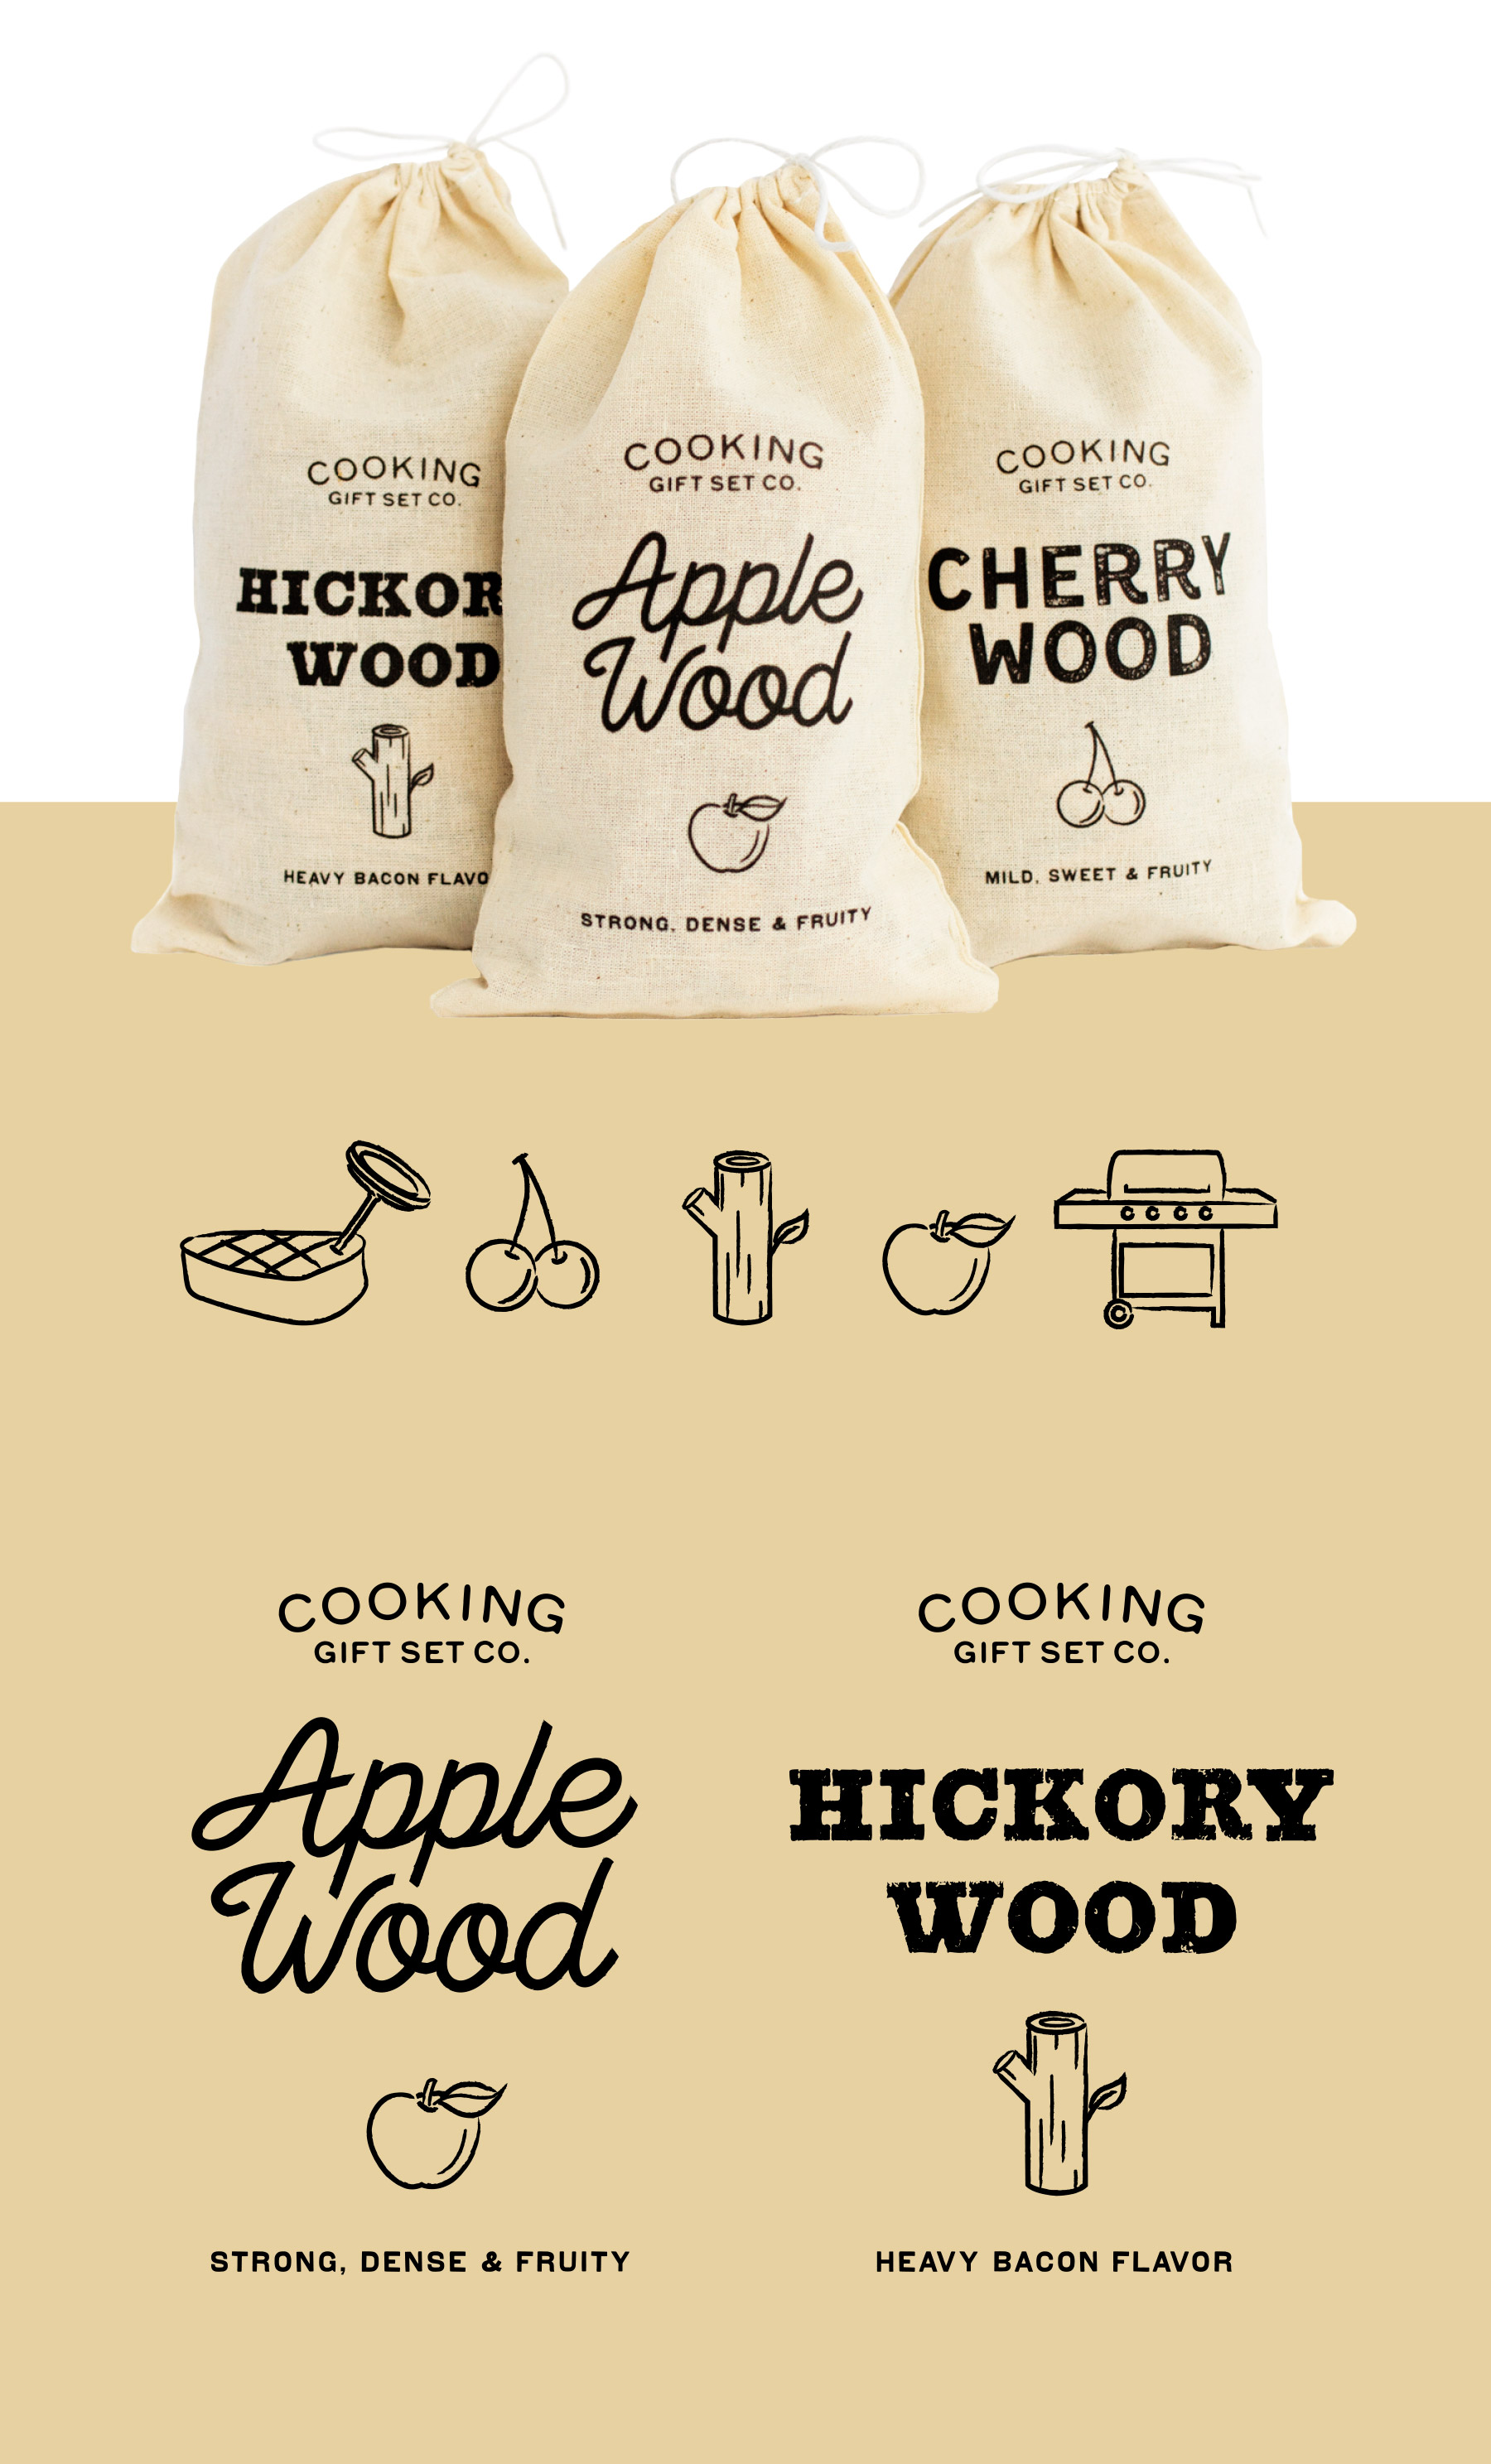 Wood chip flavor packaging and illustrations